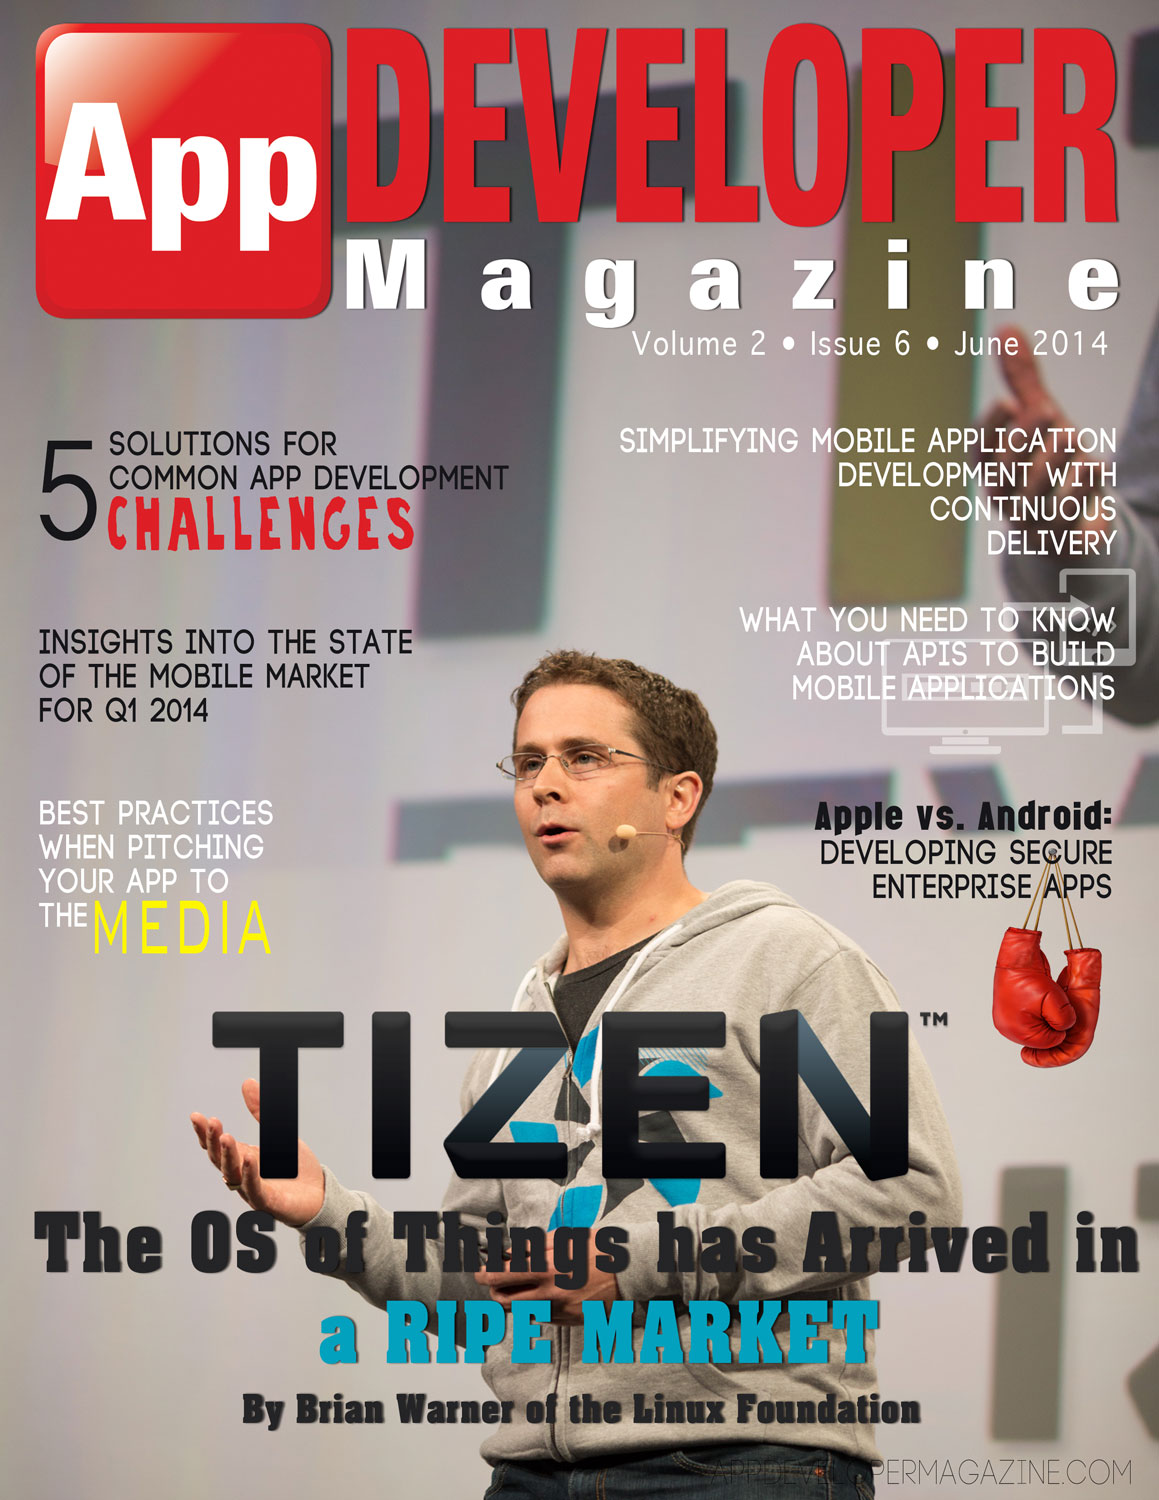 App Developer Magazine June 2014